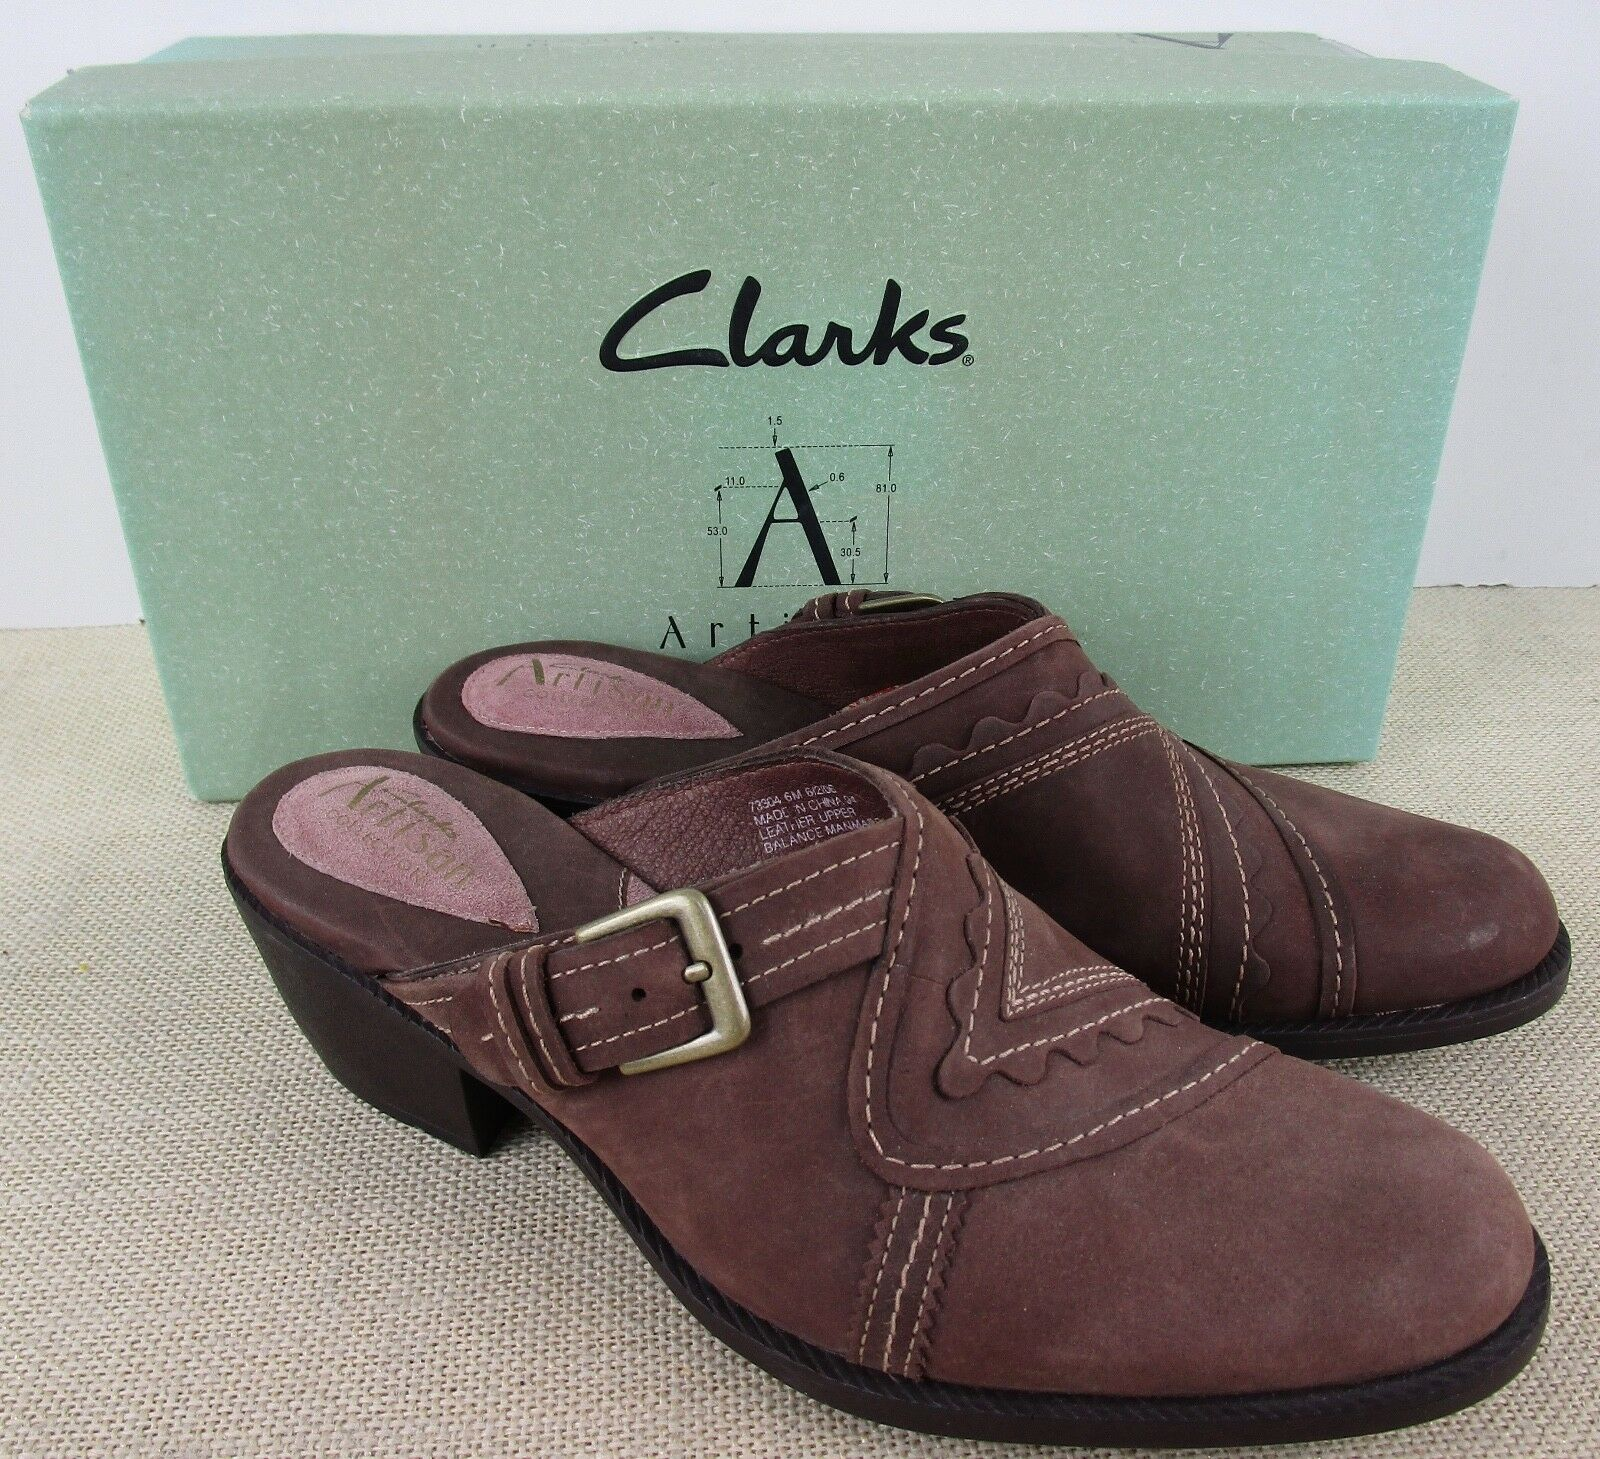 ARTISAN 73304 WOMEN'S HERALD BROWN LEATHER CLOG HEEL SHOES SIZE 6M NEW IN BOX